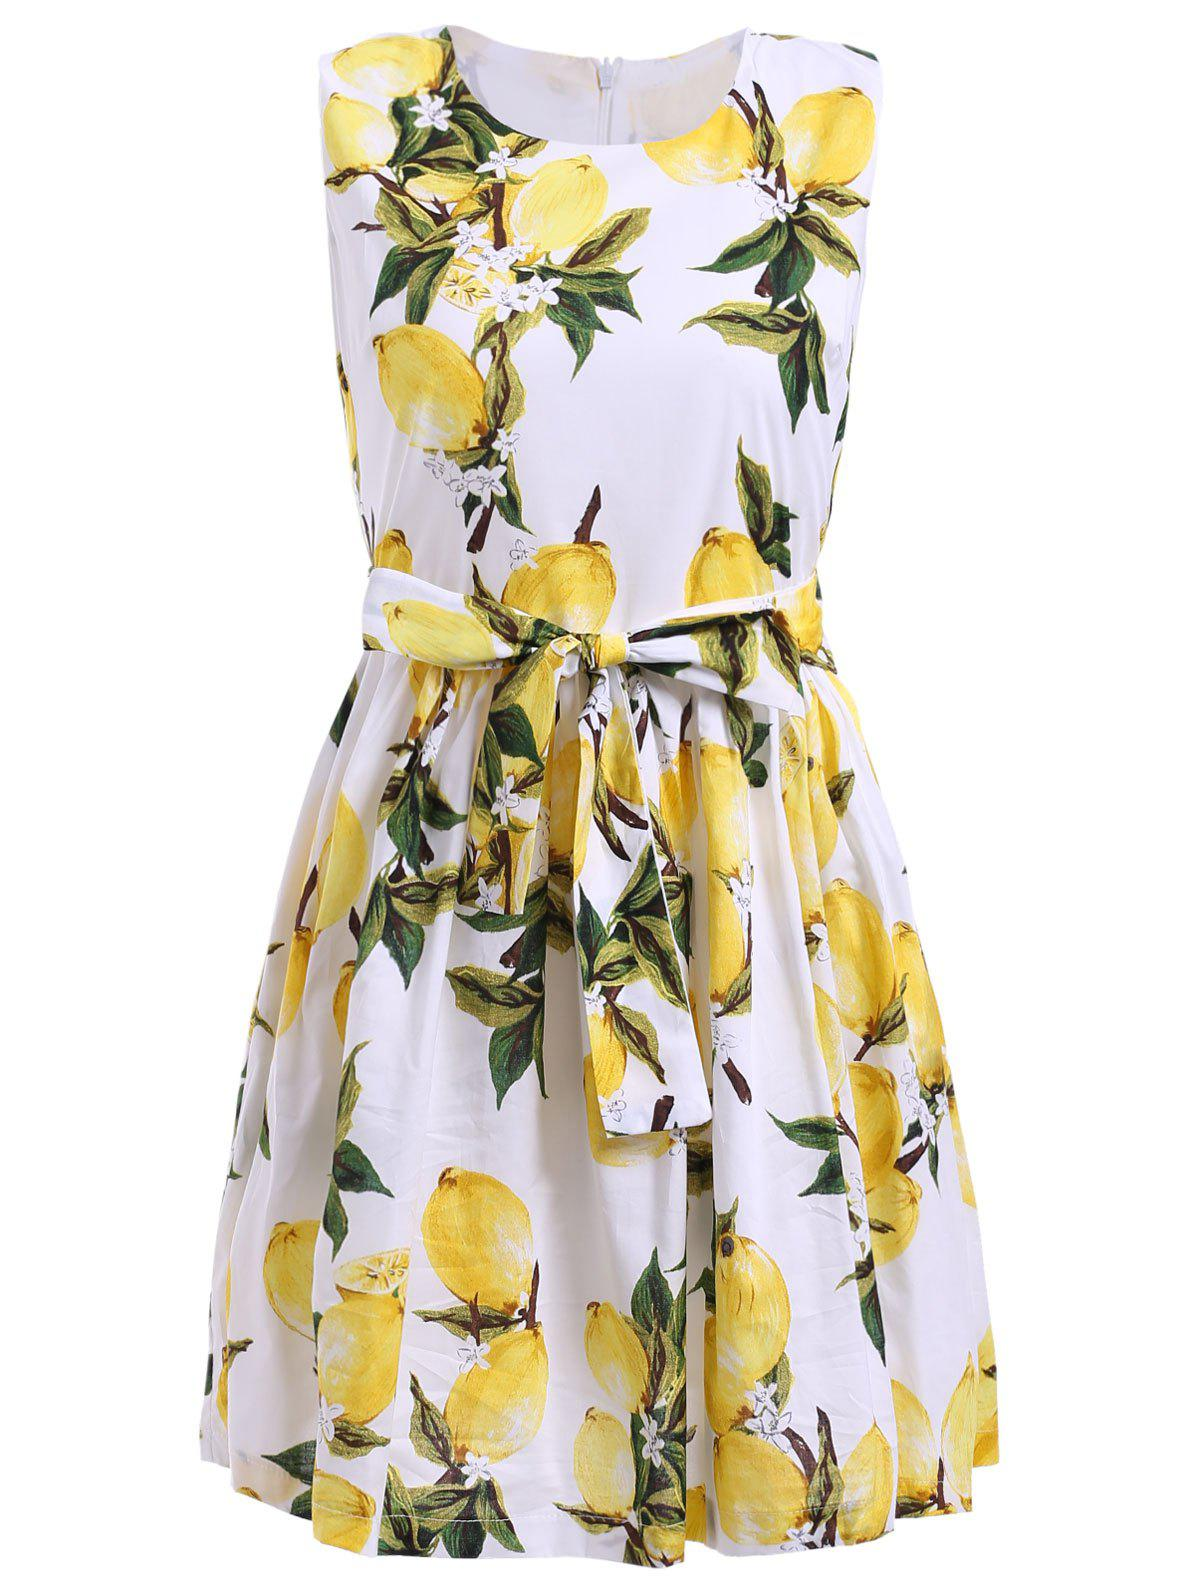 Trendy Sleeveless Lemon Print Bowknot Embellished Mini Dress For Women